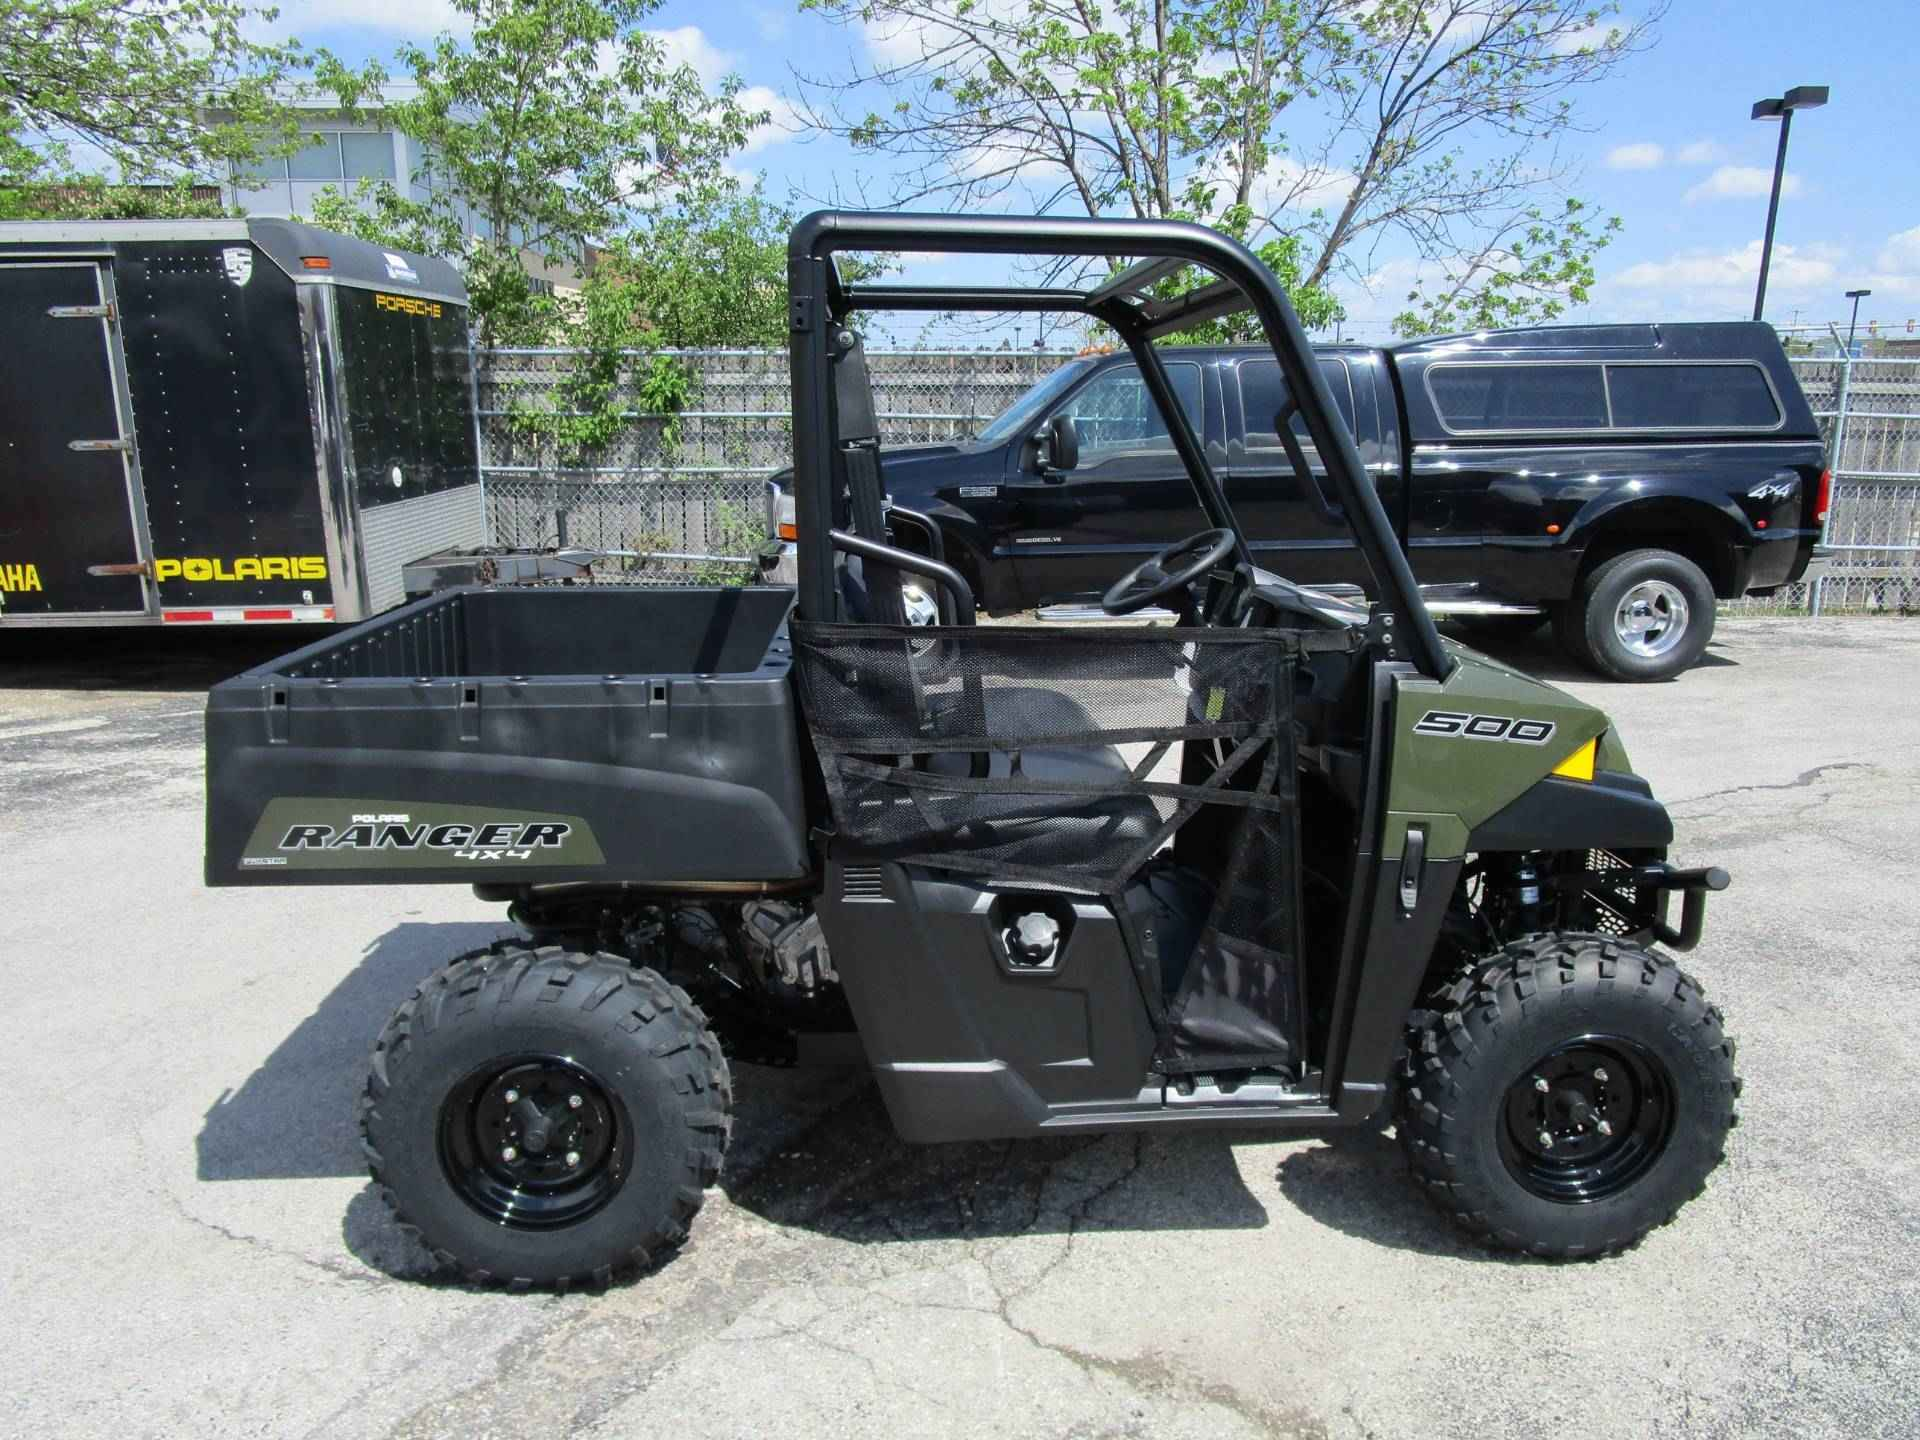 new 2017 polaris ranger 500 atvs for sale in wisconsin on atv trades. Black Bedroom Furniture Sets. Home Design Ideas